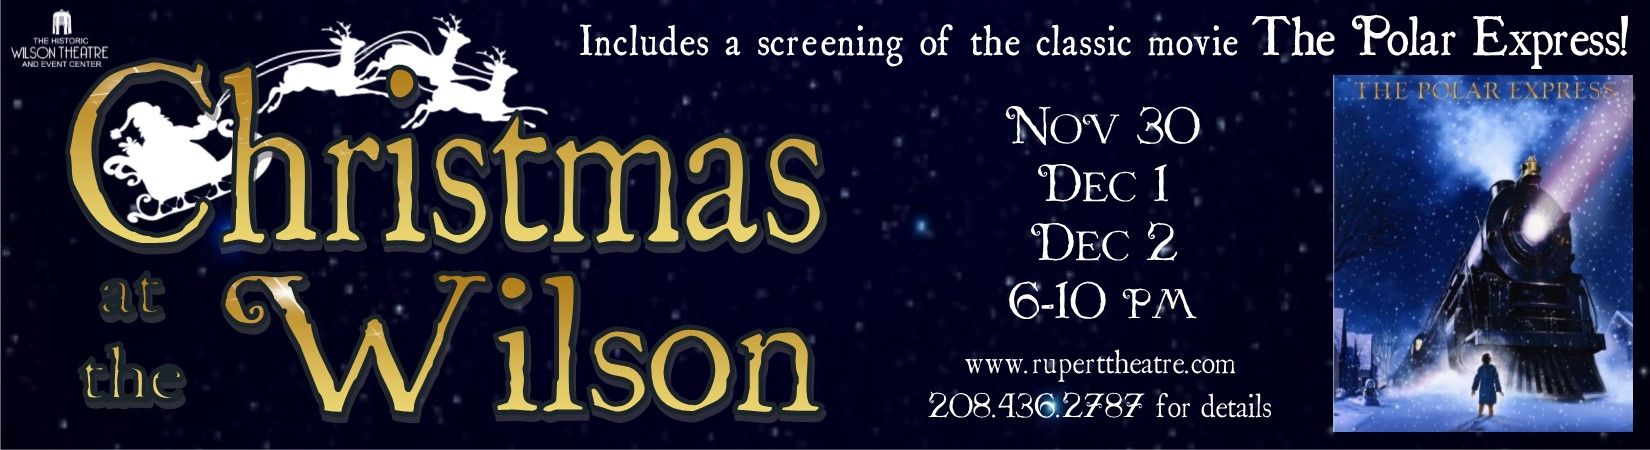 Nov 30, Dec 1-2 Christmas at the Wilson featuring a screening of